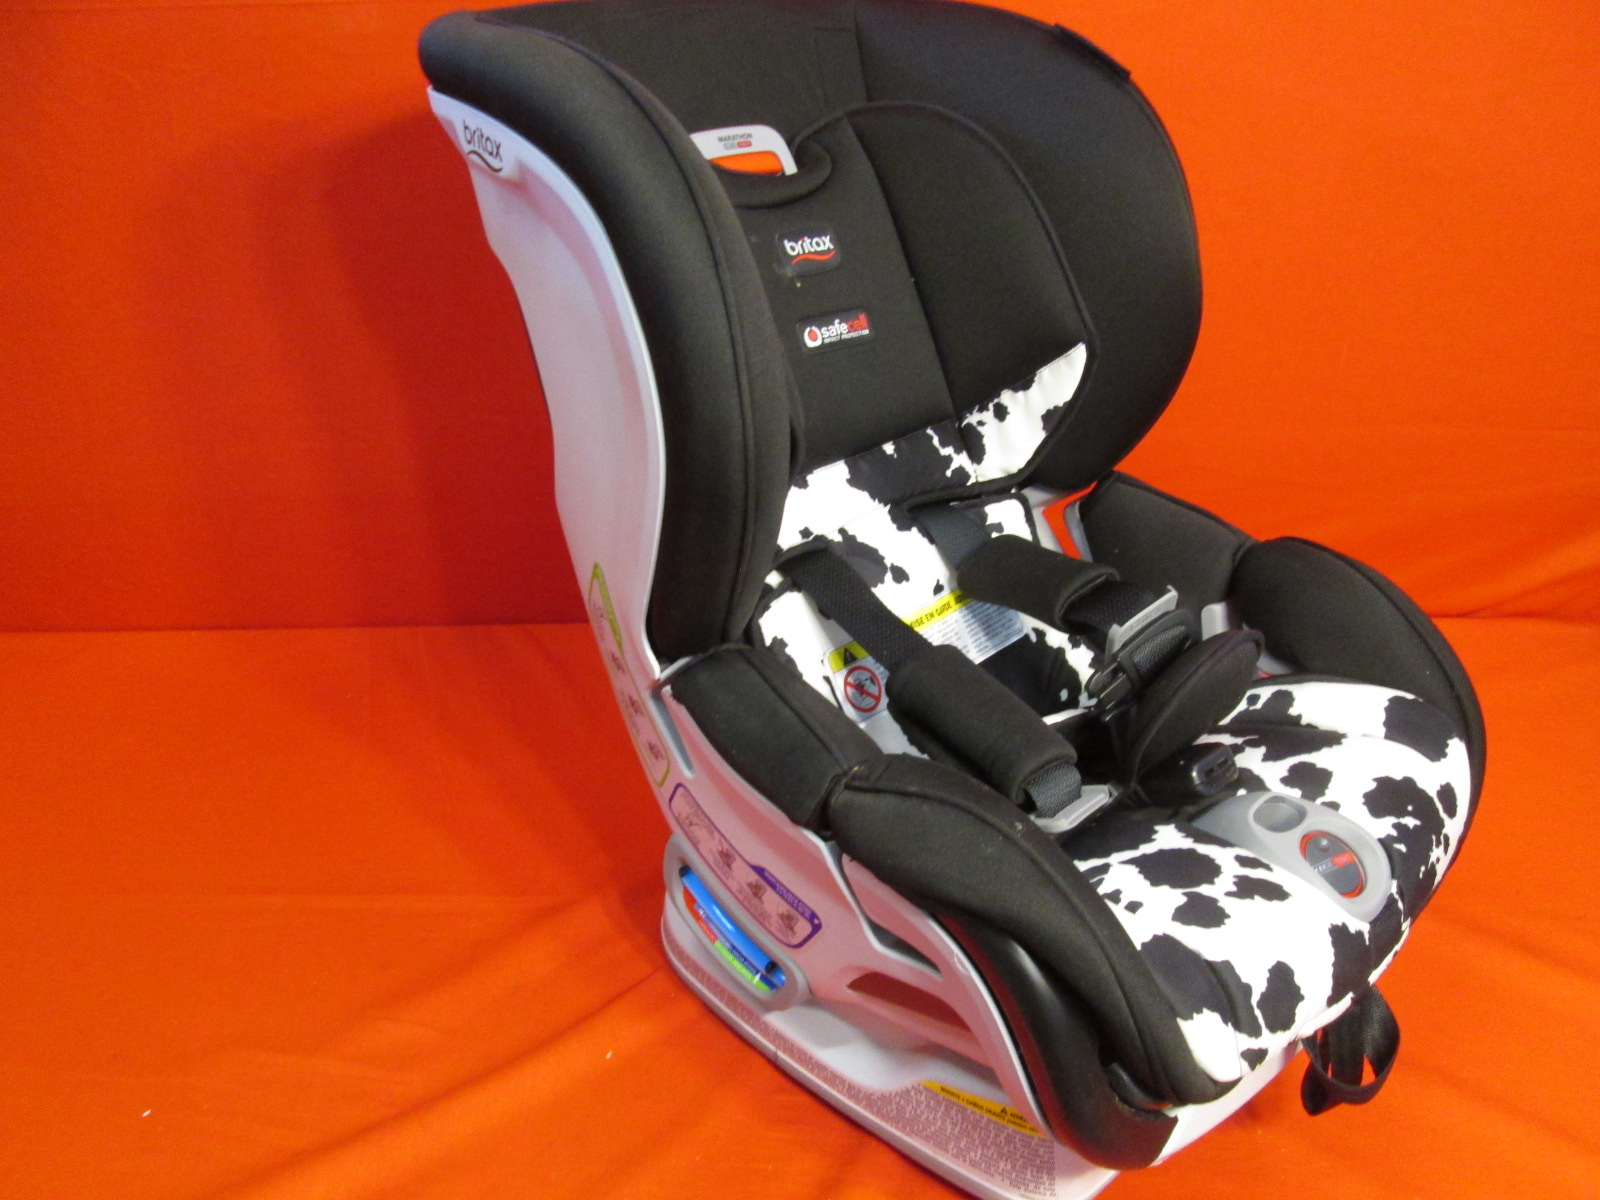 Convertible Car Seat: Britax USA Marathon ClickTight Convertible Car Seat